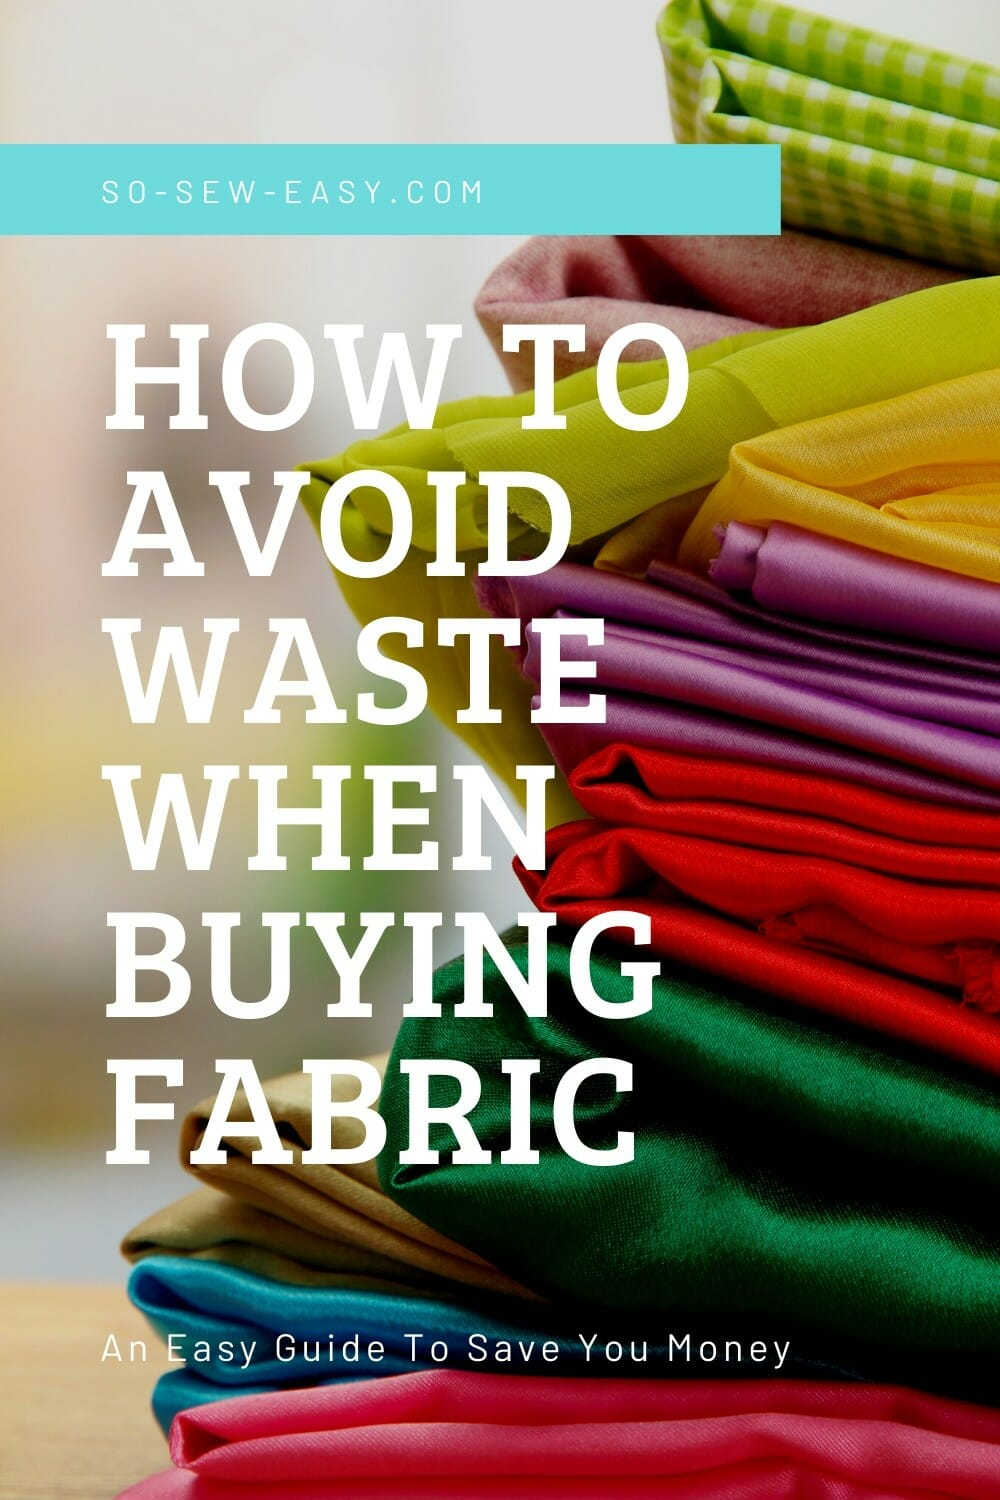 How to avoid waste when buying fabric